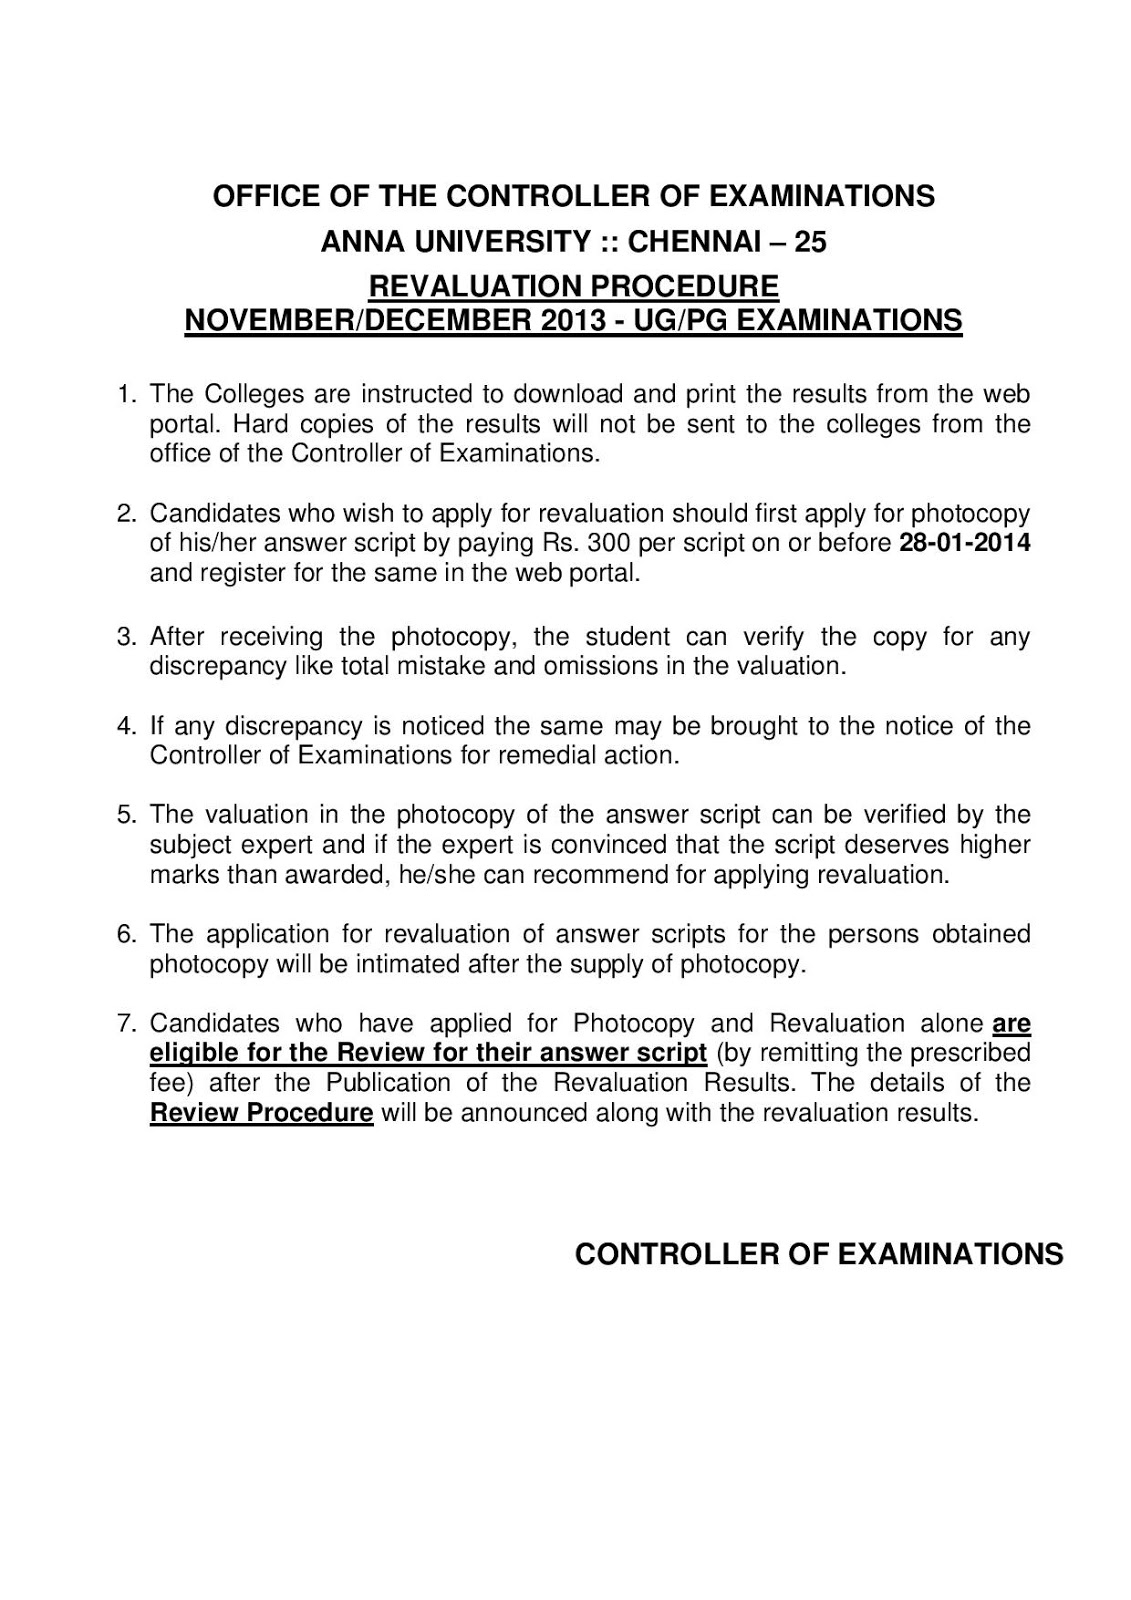 Anna university revaluation circular for nov dec exam